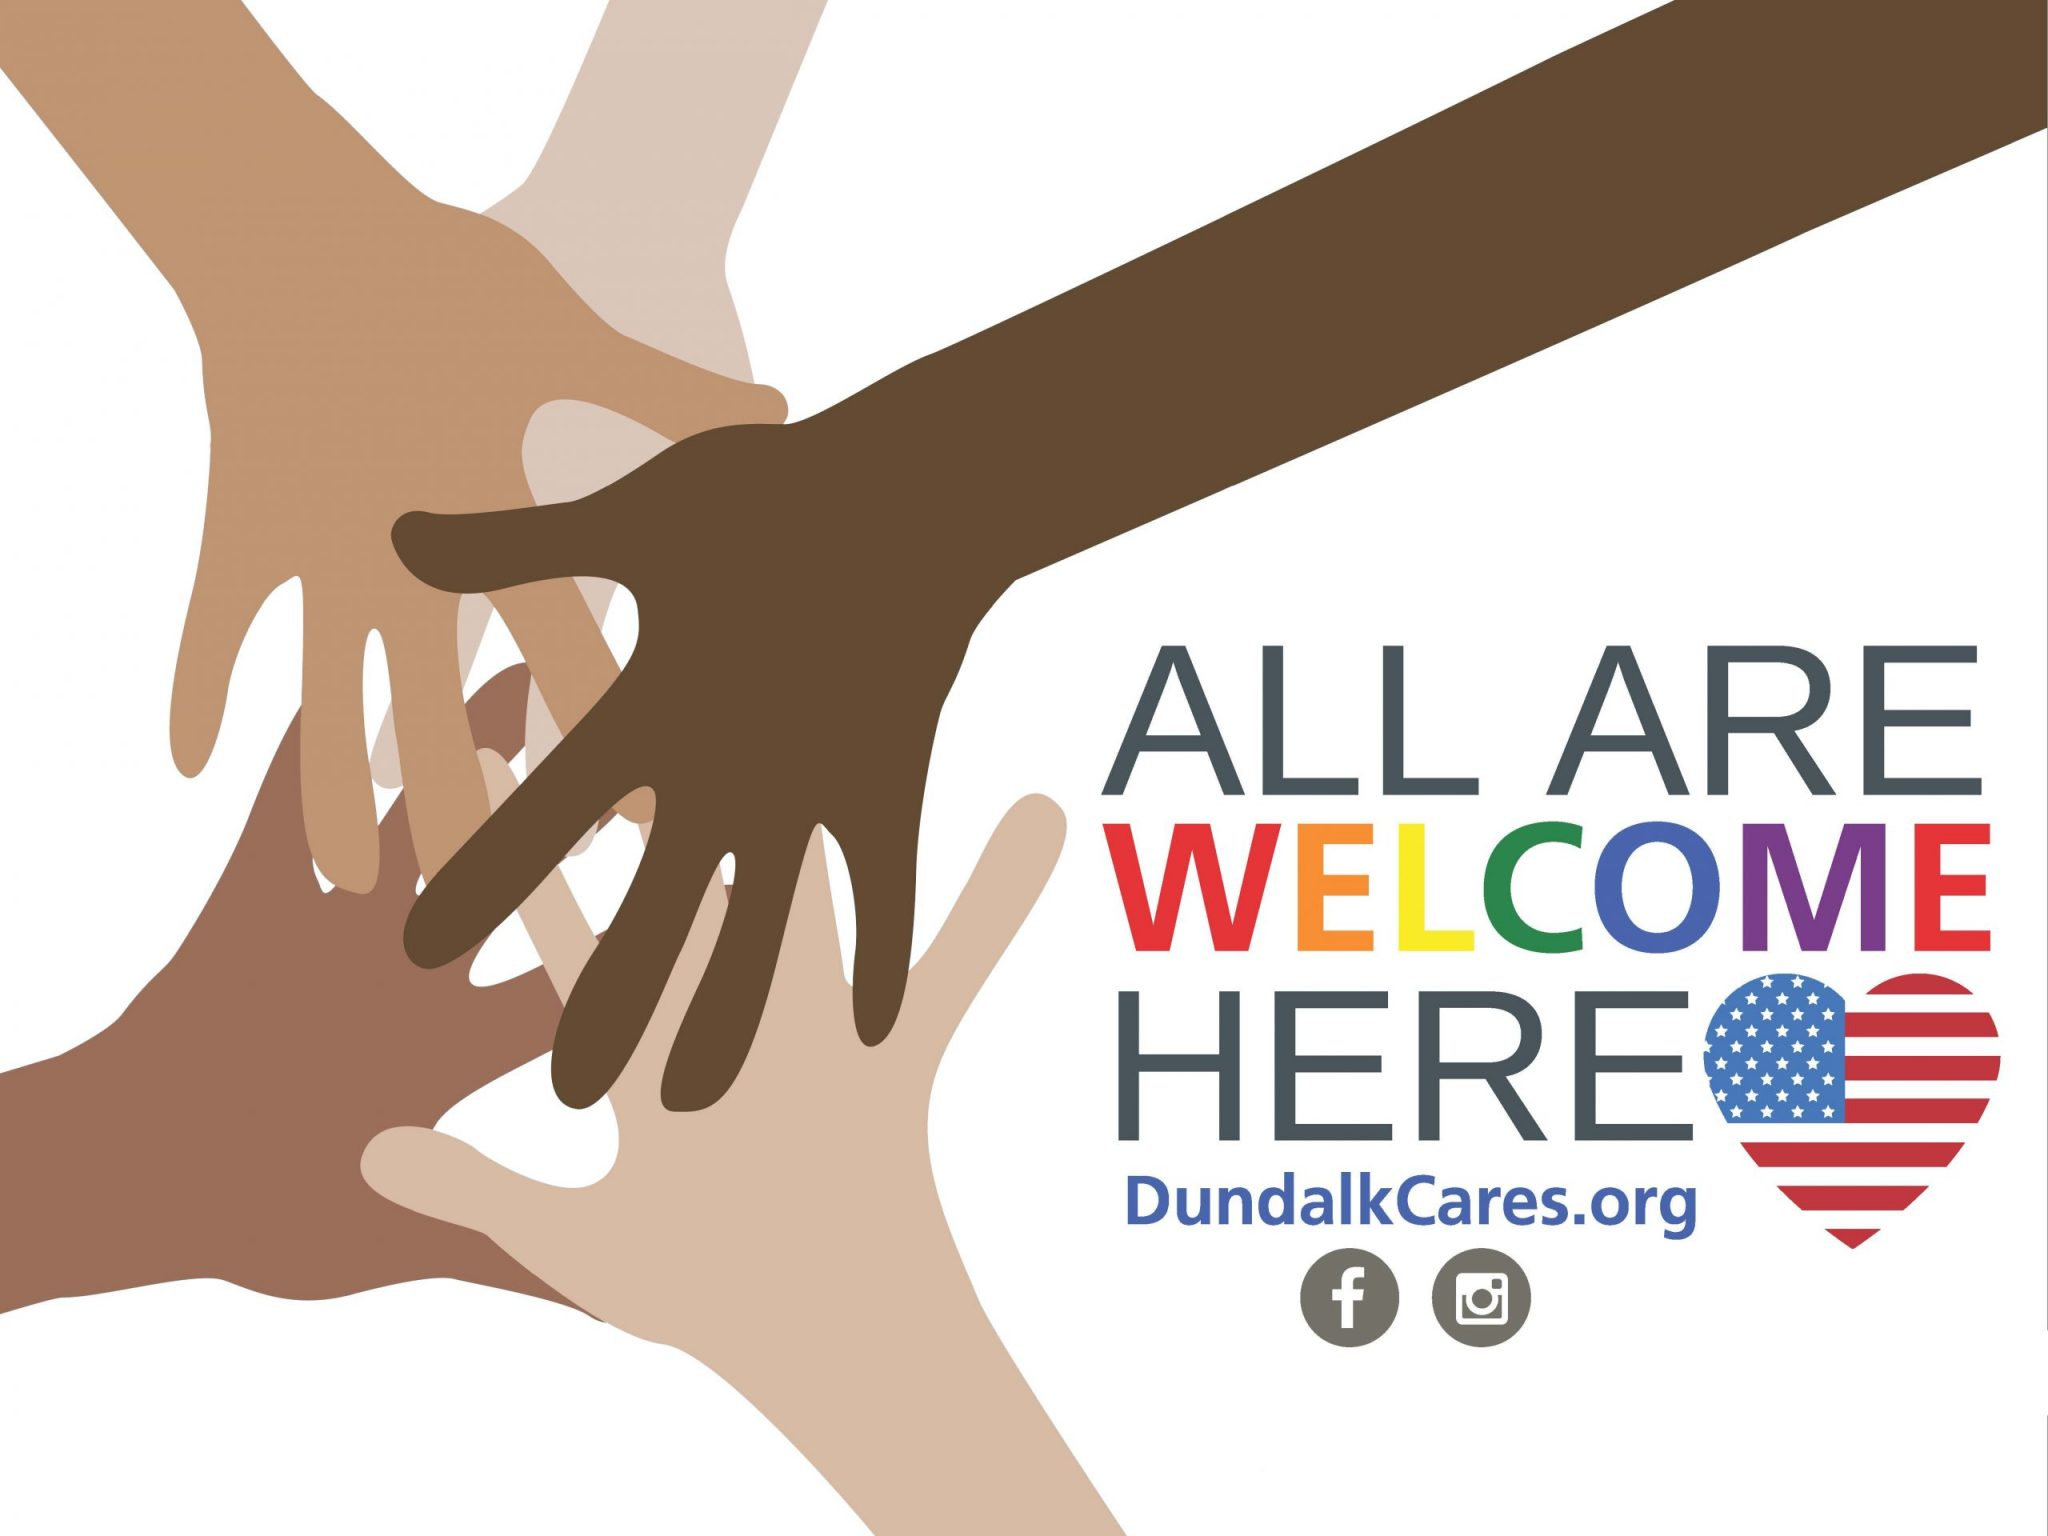 All Are Welcome Here Dundalk Cares